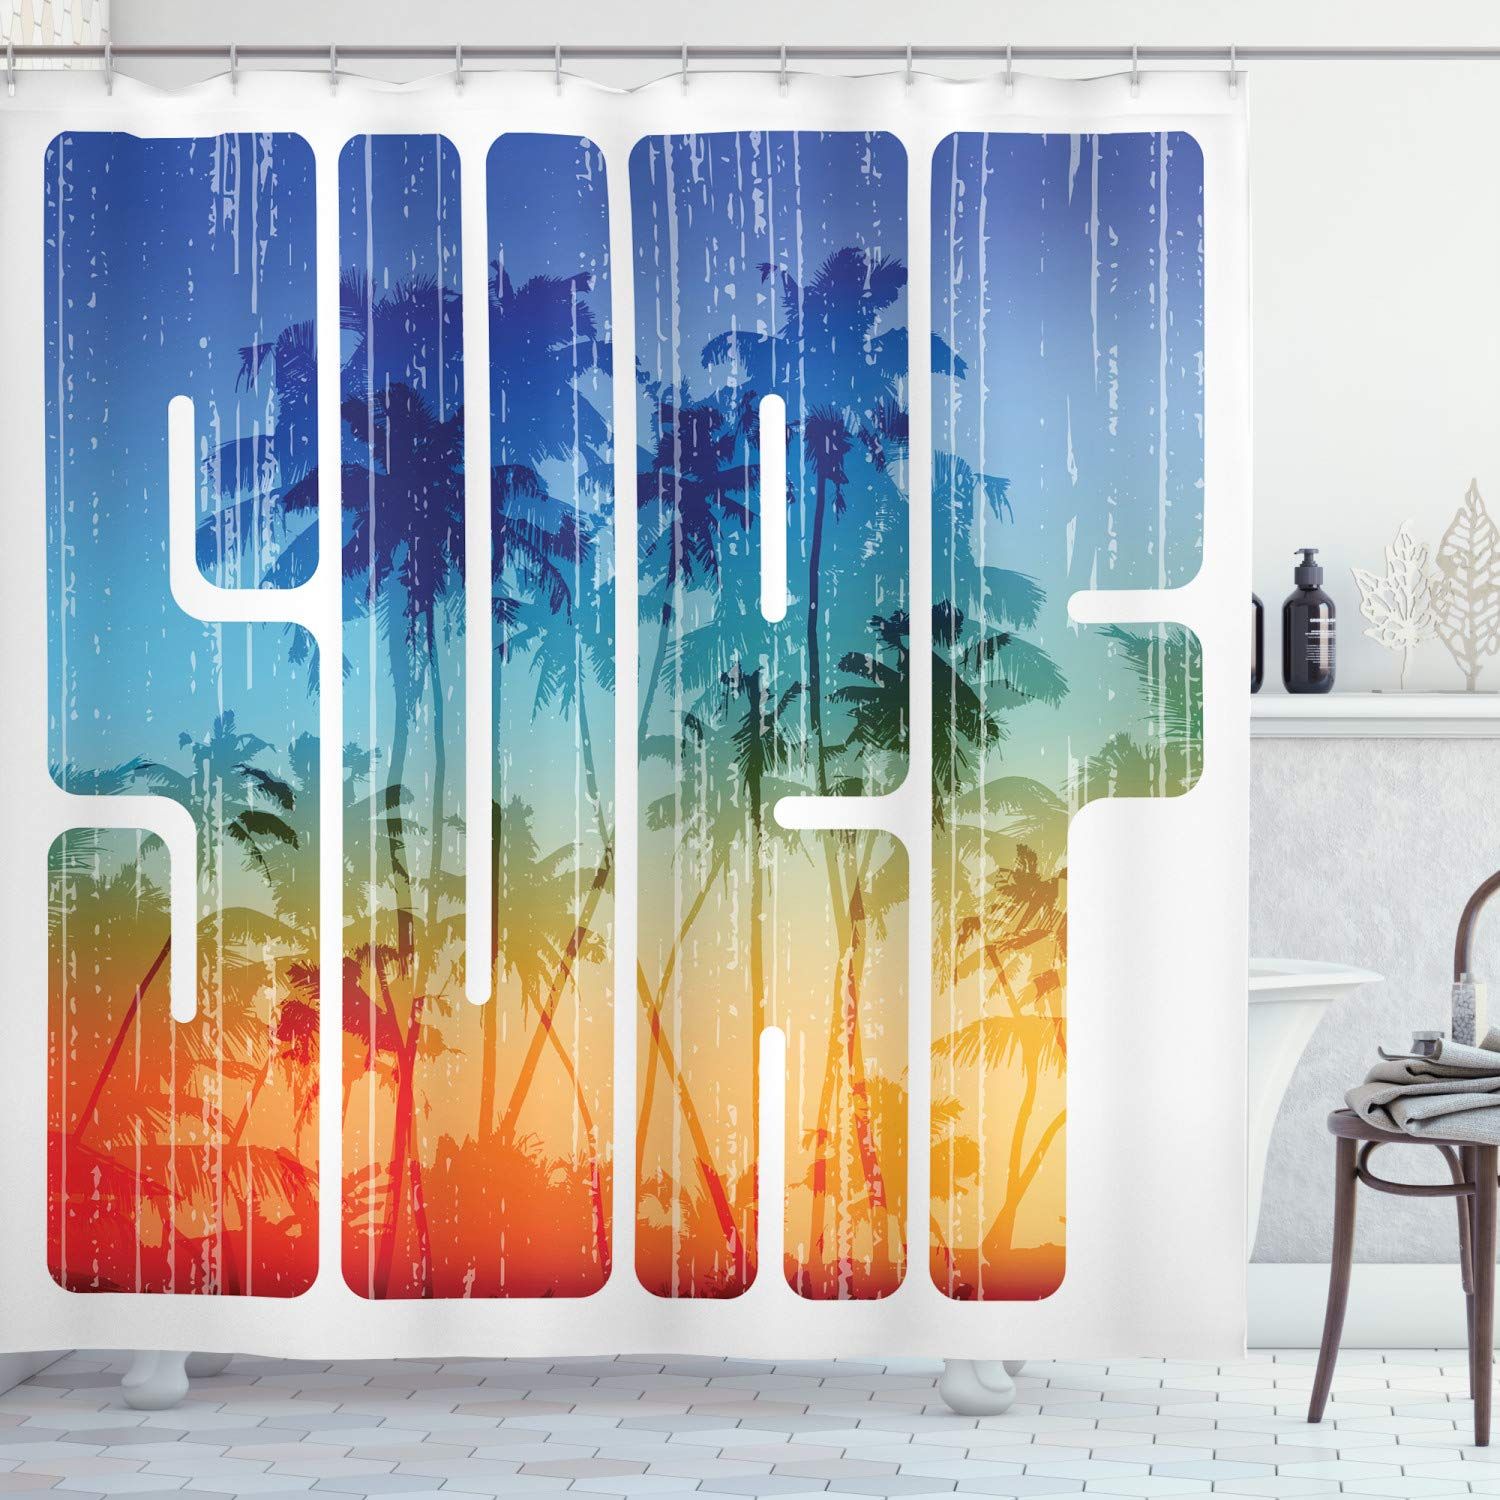 """Ambesonne Surf Shower Curtain, Summer Surf Retro Letters That Reflect The Seacoast with Palm Tree Extreme Sports Art, Cloth Fabric Bathroom Decor Set with Hooks, 75"""" Long, Navy Orange"""